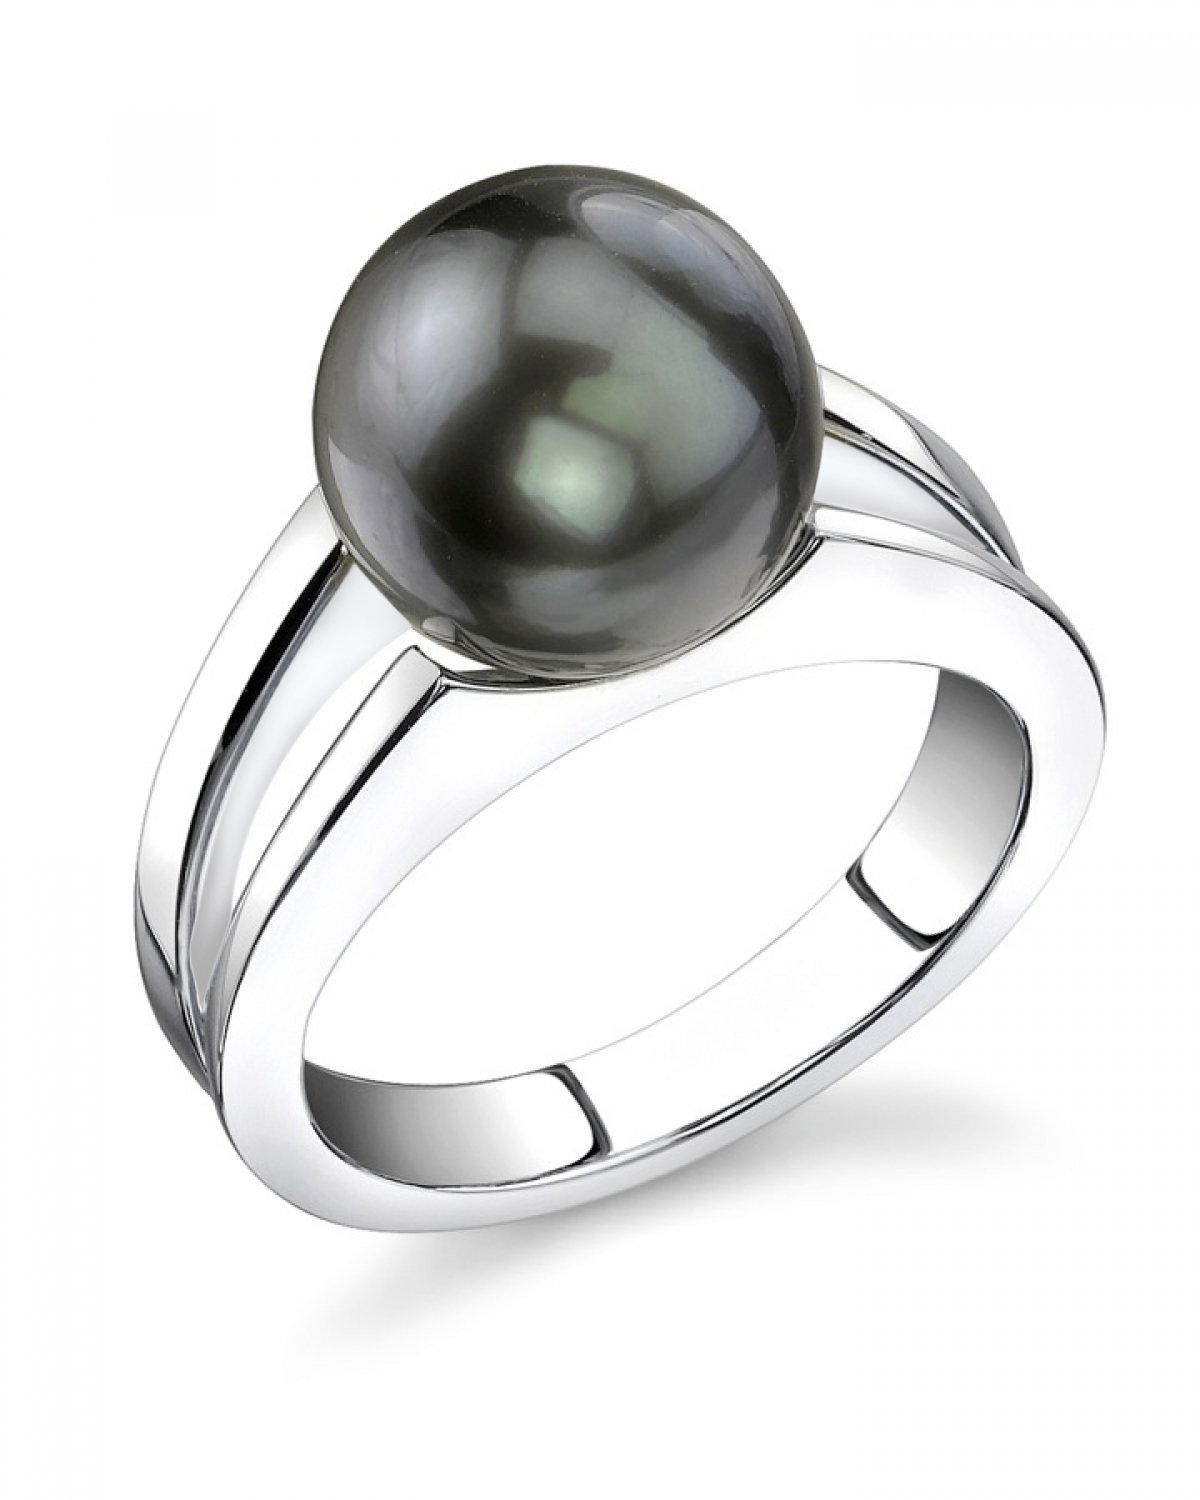 THE PEARL SOURCE 10-11mm Genuine Black Tahitian South Sea ...